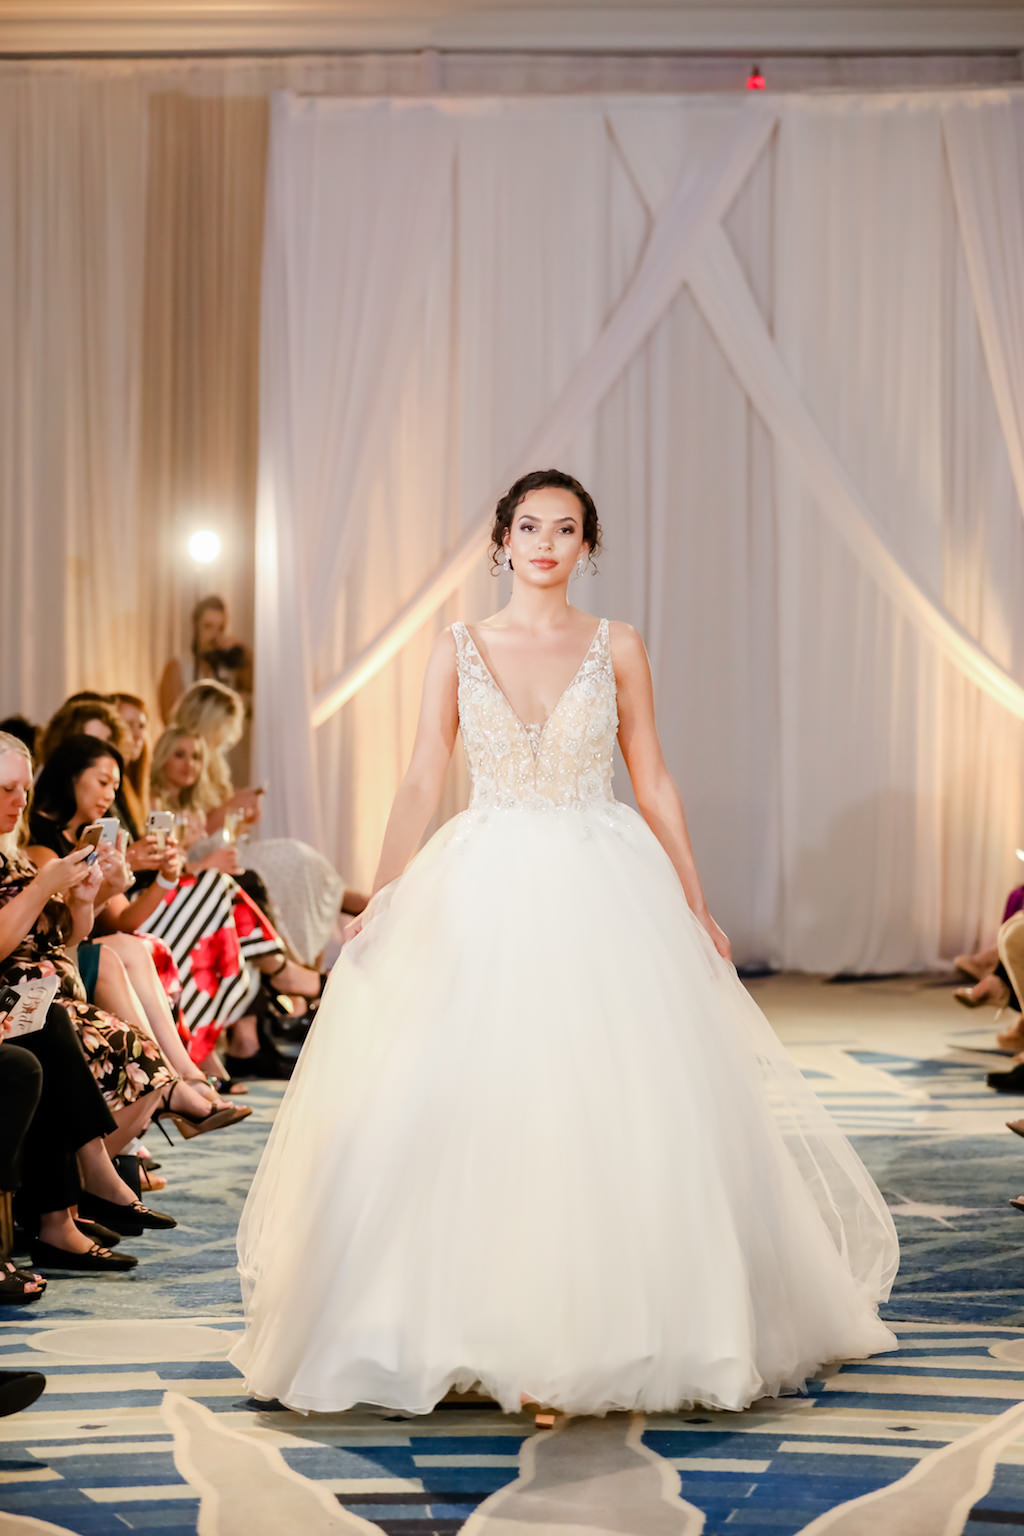 Romantic Ivory Ballgown, Beaded Low-Neck Fitted Bodice, Full Tulle Skirt   Truly Forever Bridal   The Ritz Carlton Sarasota   Tampa Bay Wedding Photographer Lifelong Photography Studios